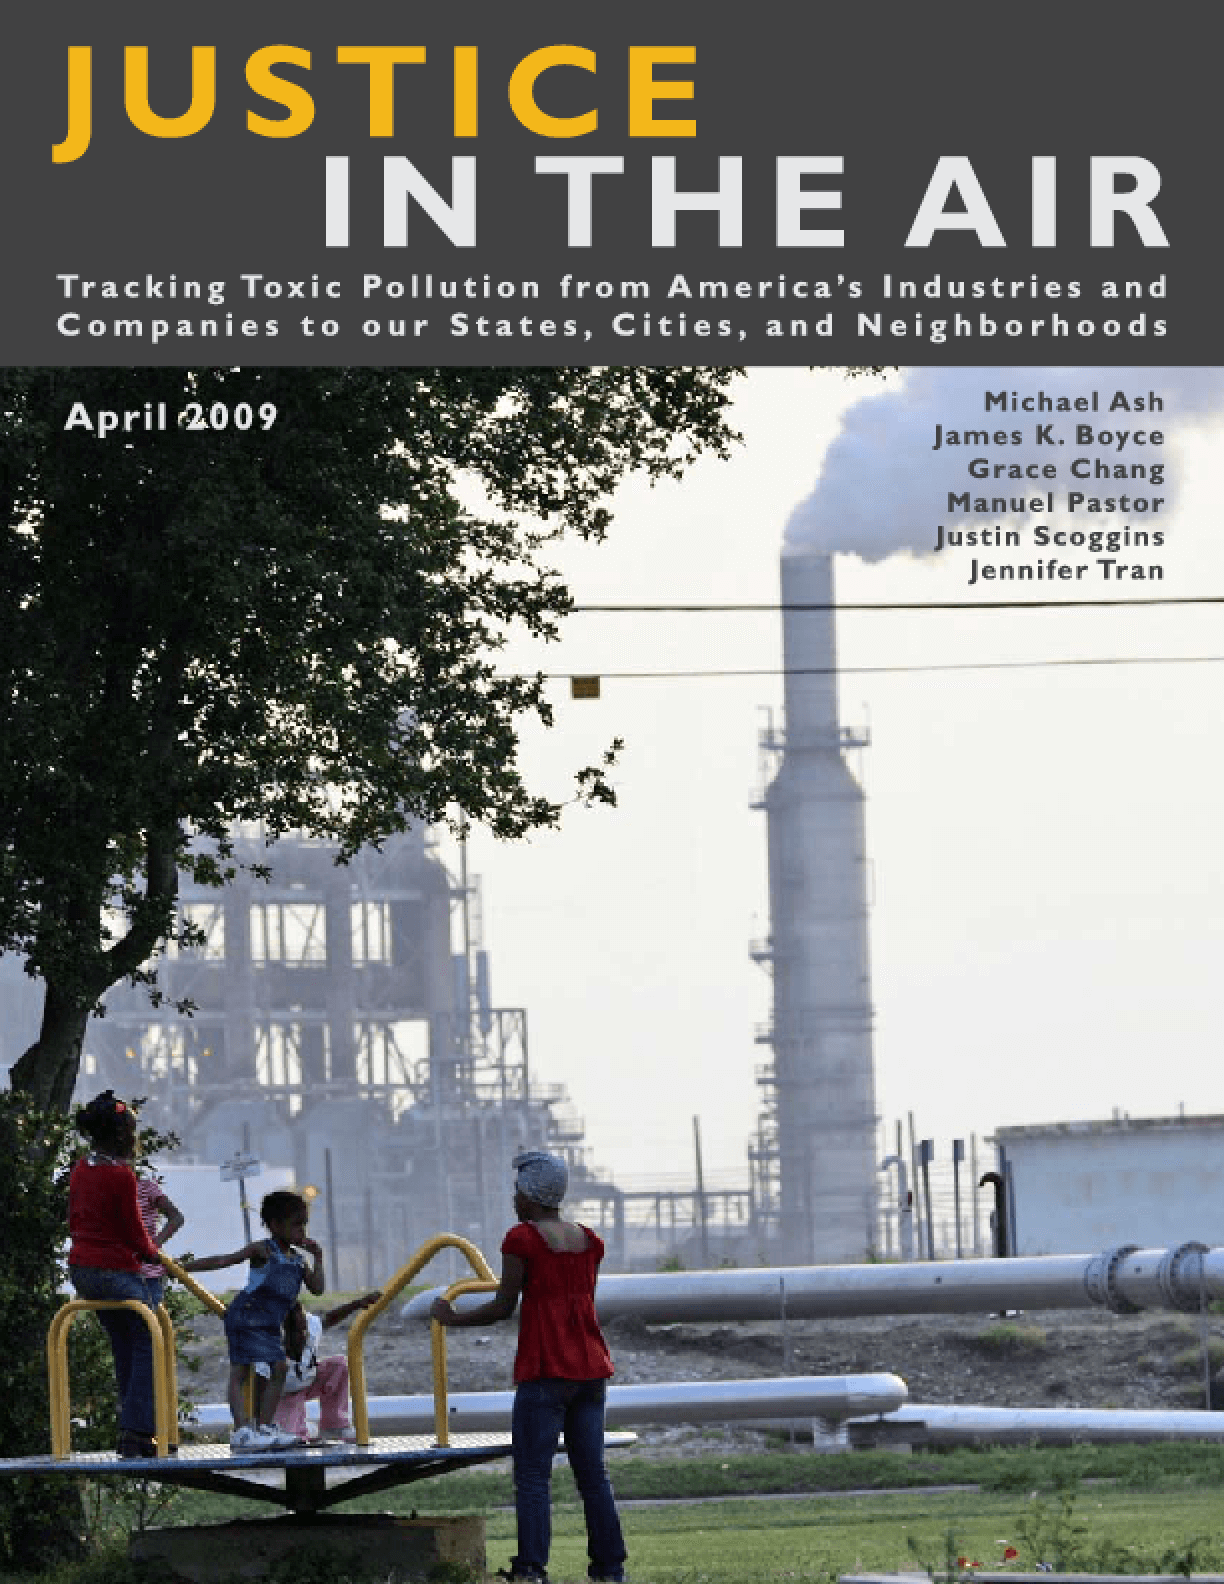 Justice in the Air: Tracking Toxic Pollution from America's Industries and Companies to Add to Our States, Cities, and Neighborhoods